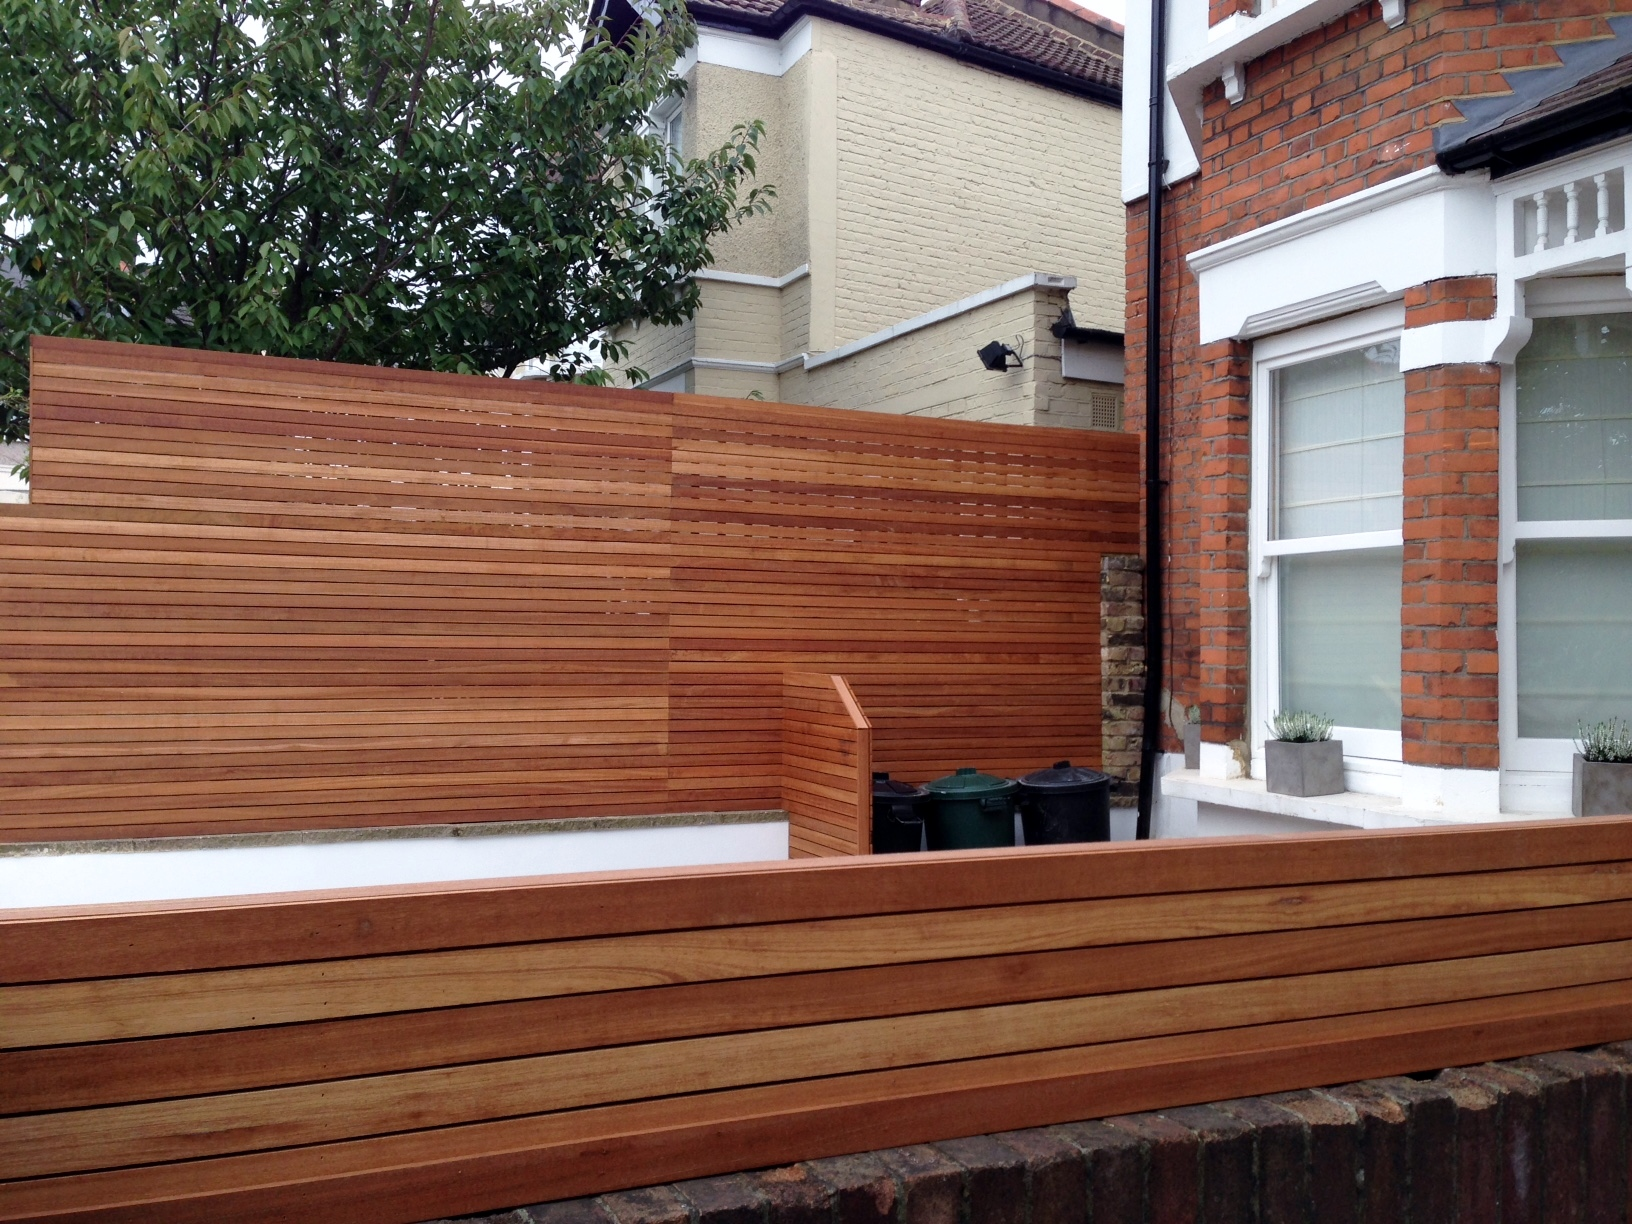 front garden drivewat gravel travertine paving path hardwood privacy screen trellis tooting london (23)